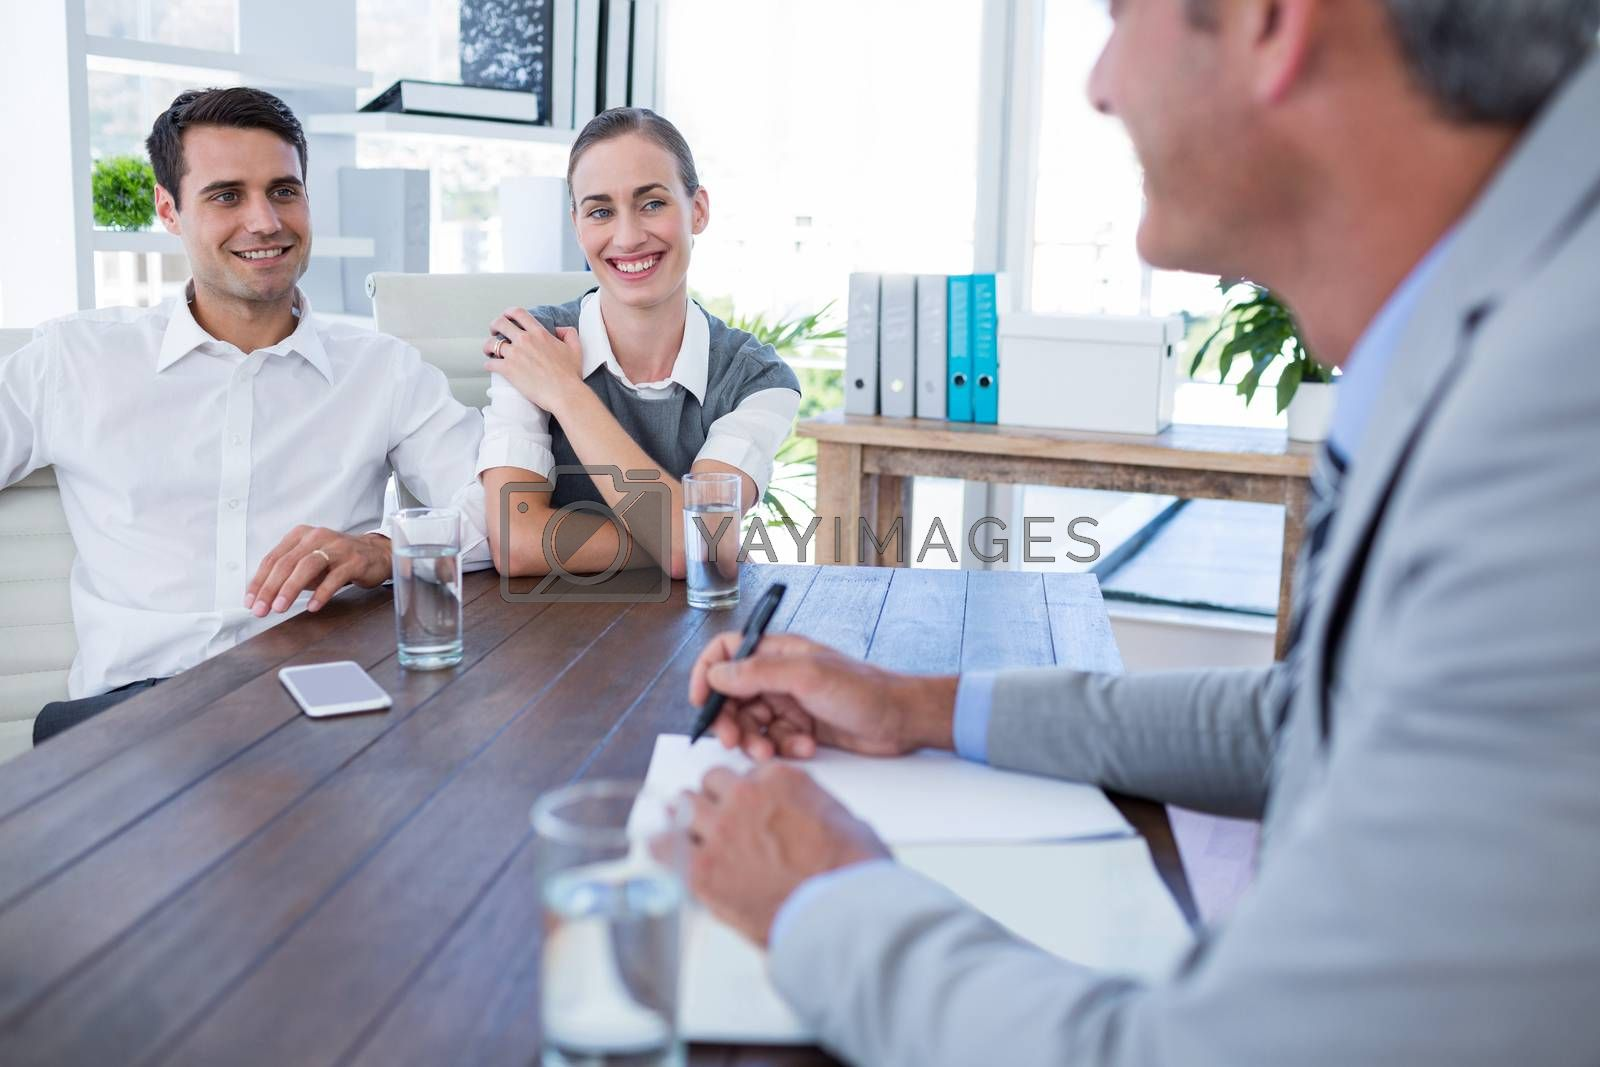 Casual business people speaking together in office